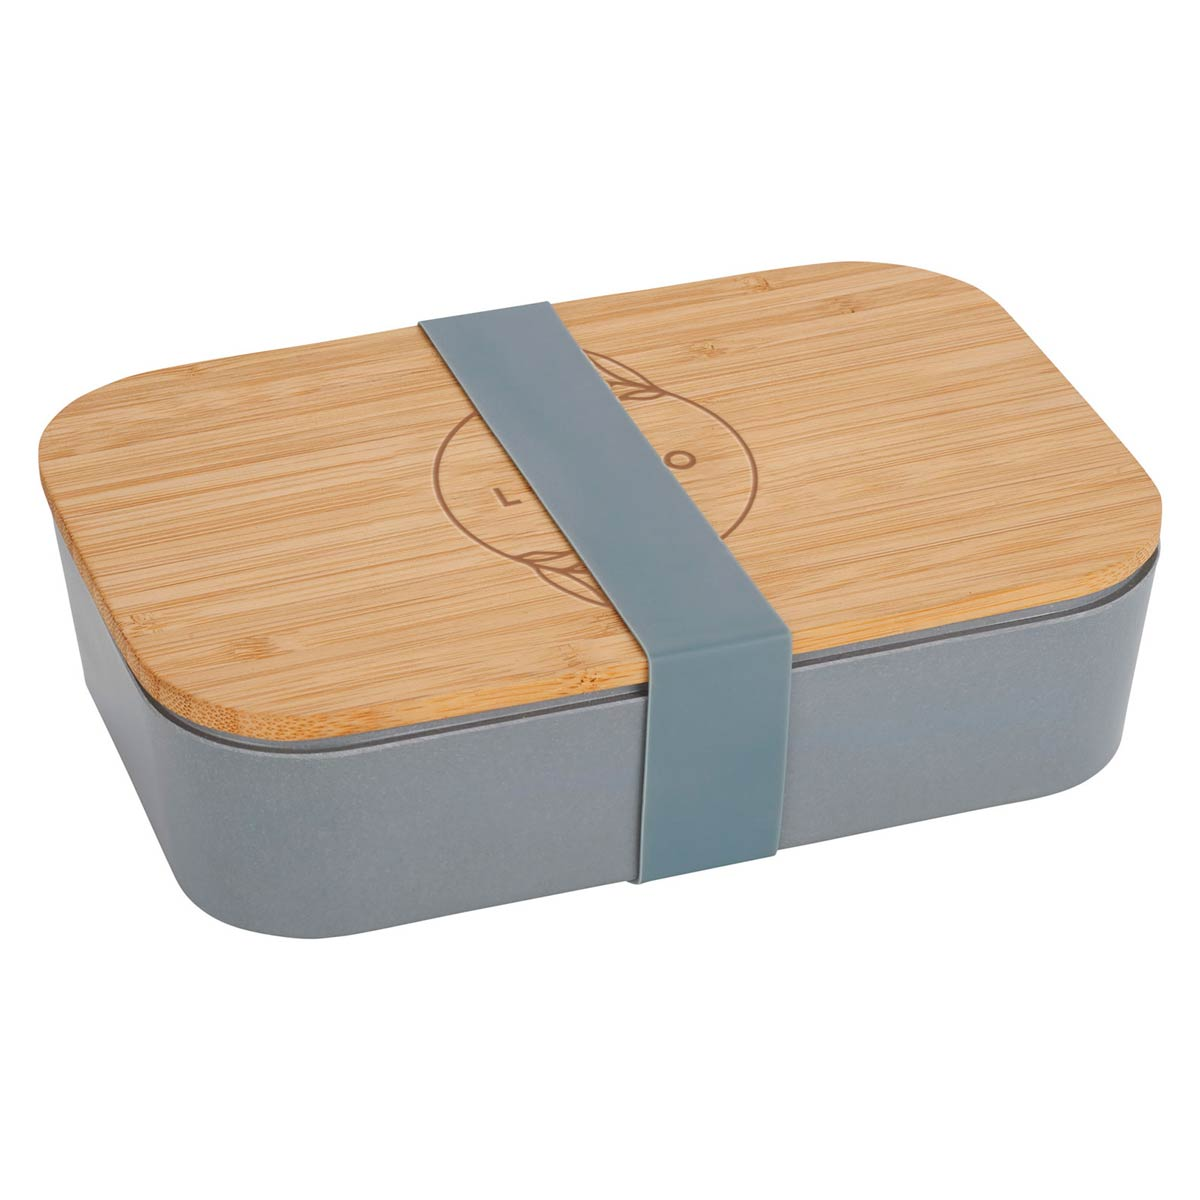 287884 bamboo bento box one location laser engraved